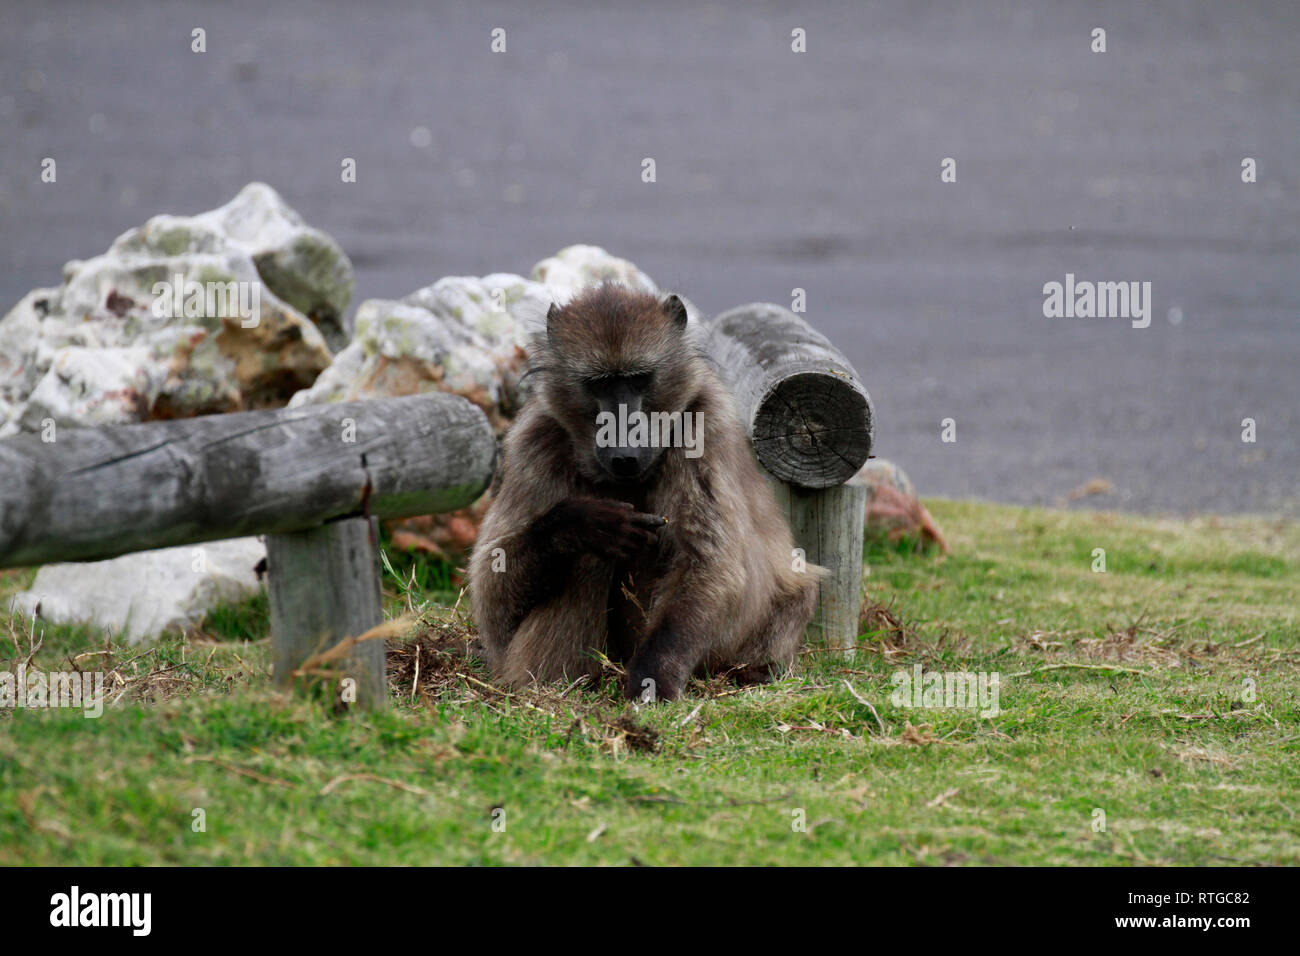 Achacma baboon (Papio ursinus) eating grass roots in the  Cape Of Good Hope Nature Reserve, Cape Town, South Africa. - Stock Image